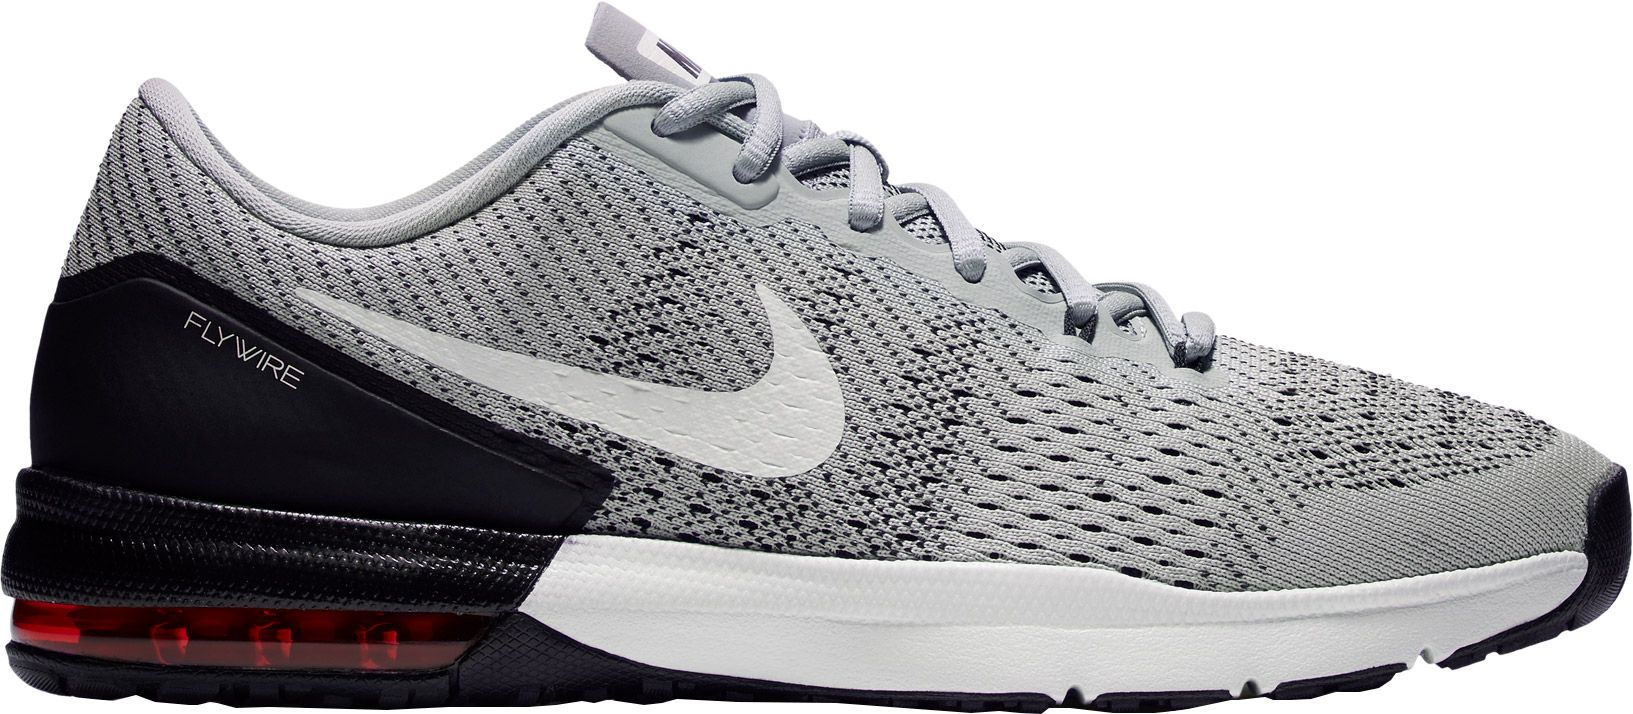 Airmax nike shoes nike menu0027s air max typha training shoes | dicku0027s sporting goods SMTFSOW